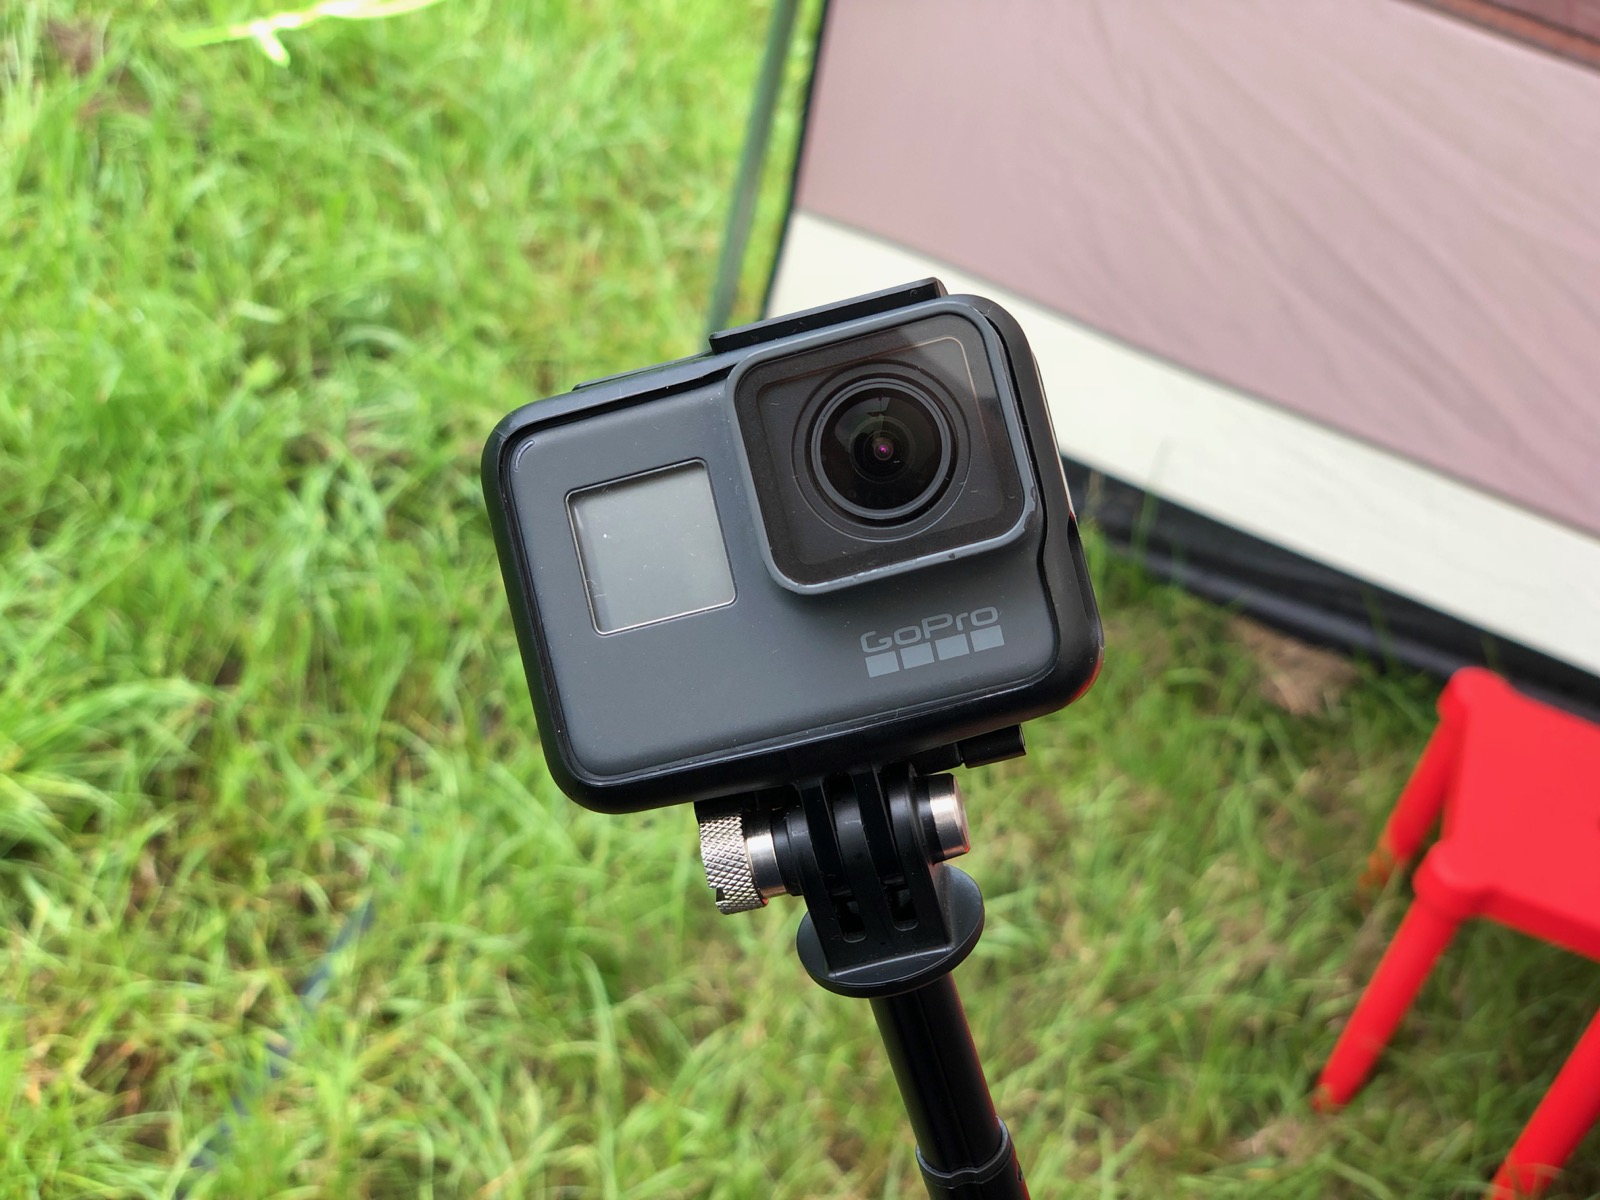 GoPro is use while camping